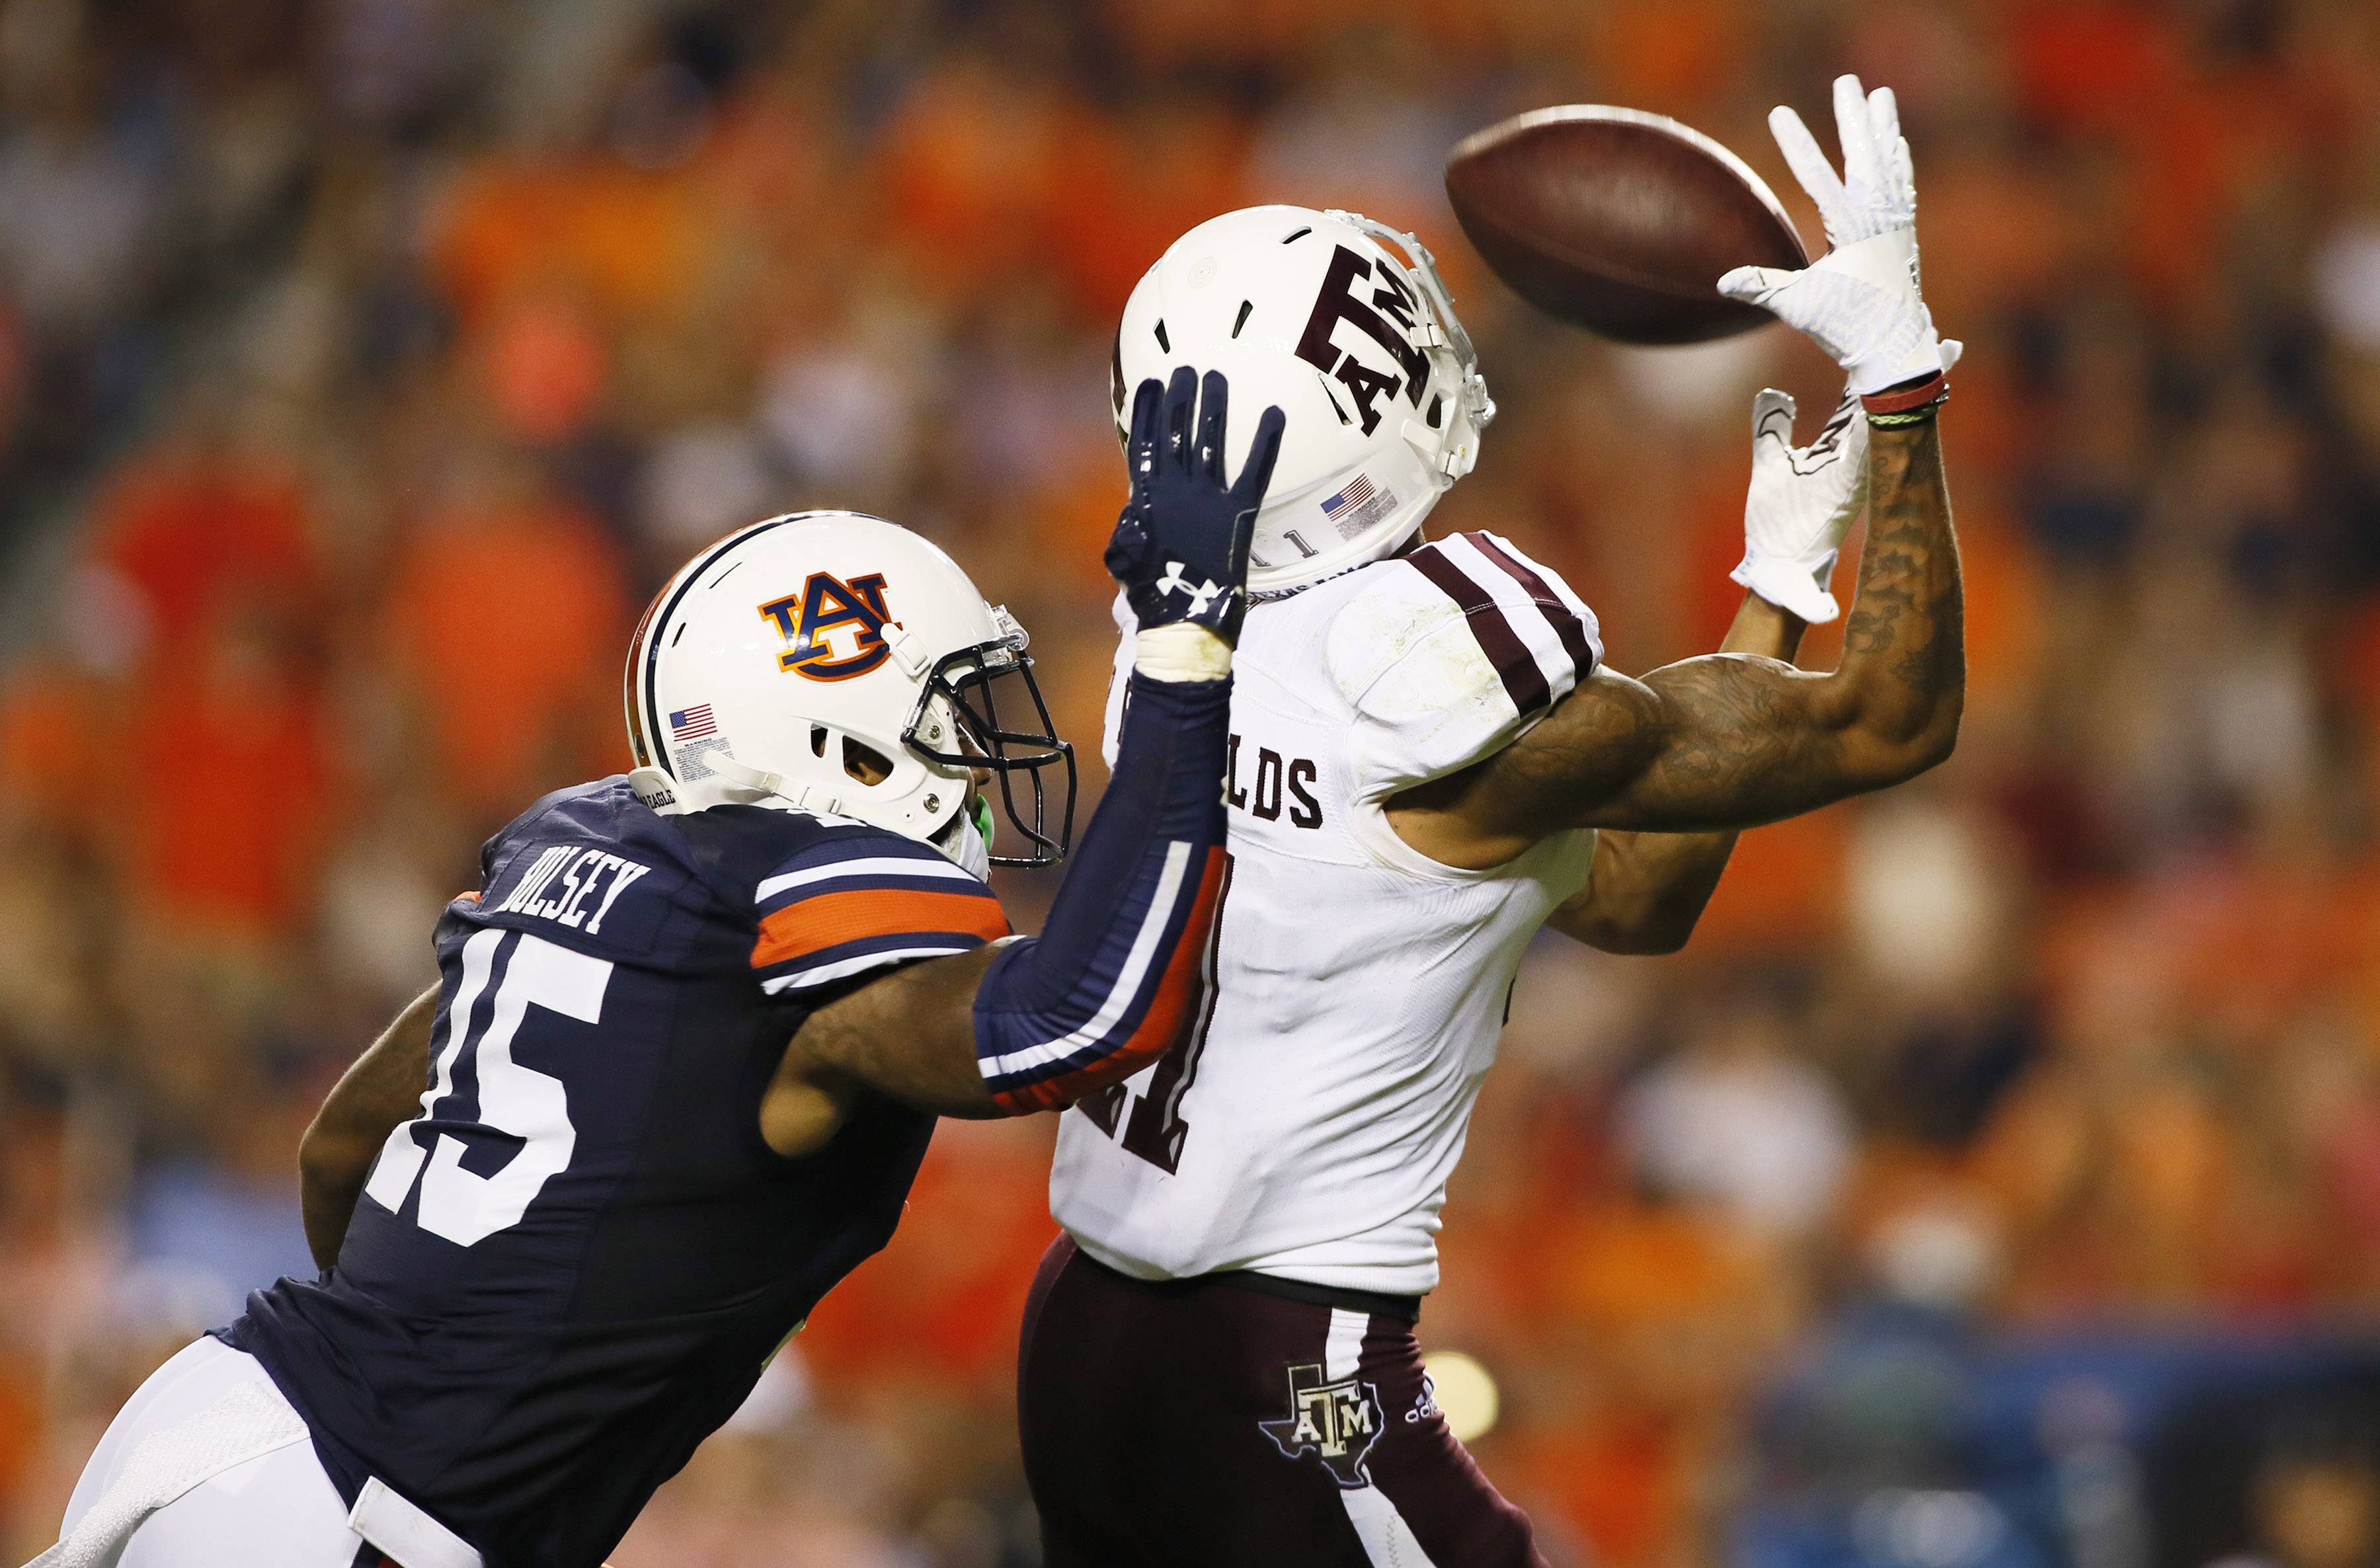 e4e9ef04c31237 3 Things We Learned  Texas A M vs Auburn